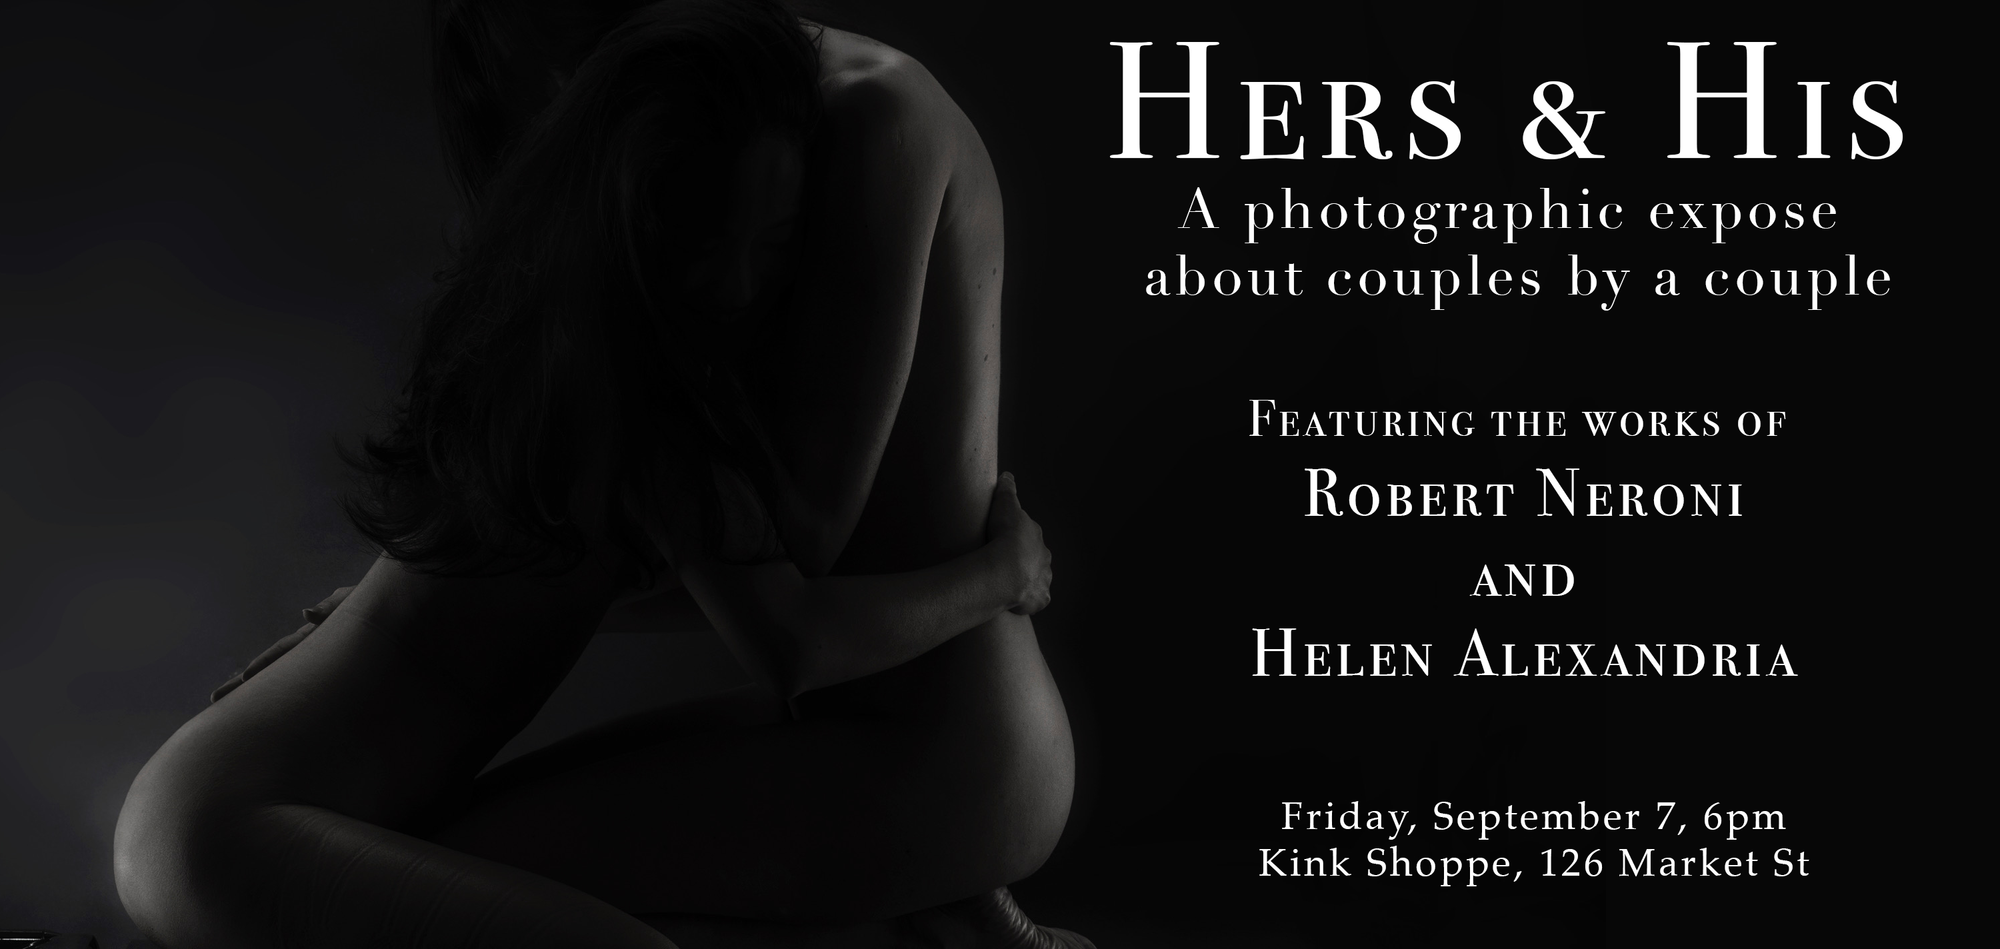 Hers & His First Friday Erotic Art Show at Kink Shoppe featuring Robert Neroni and Helen Alexandria